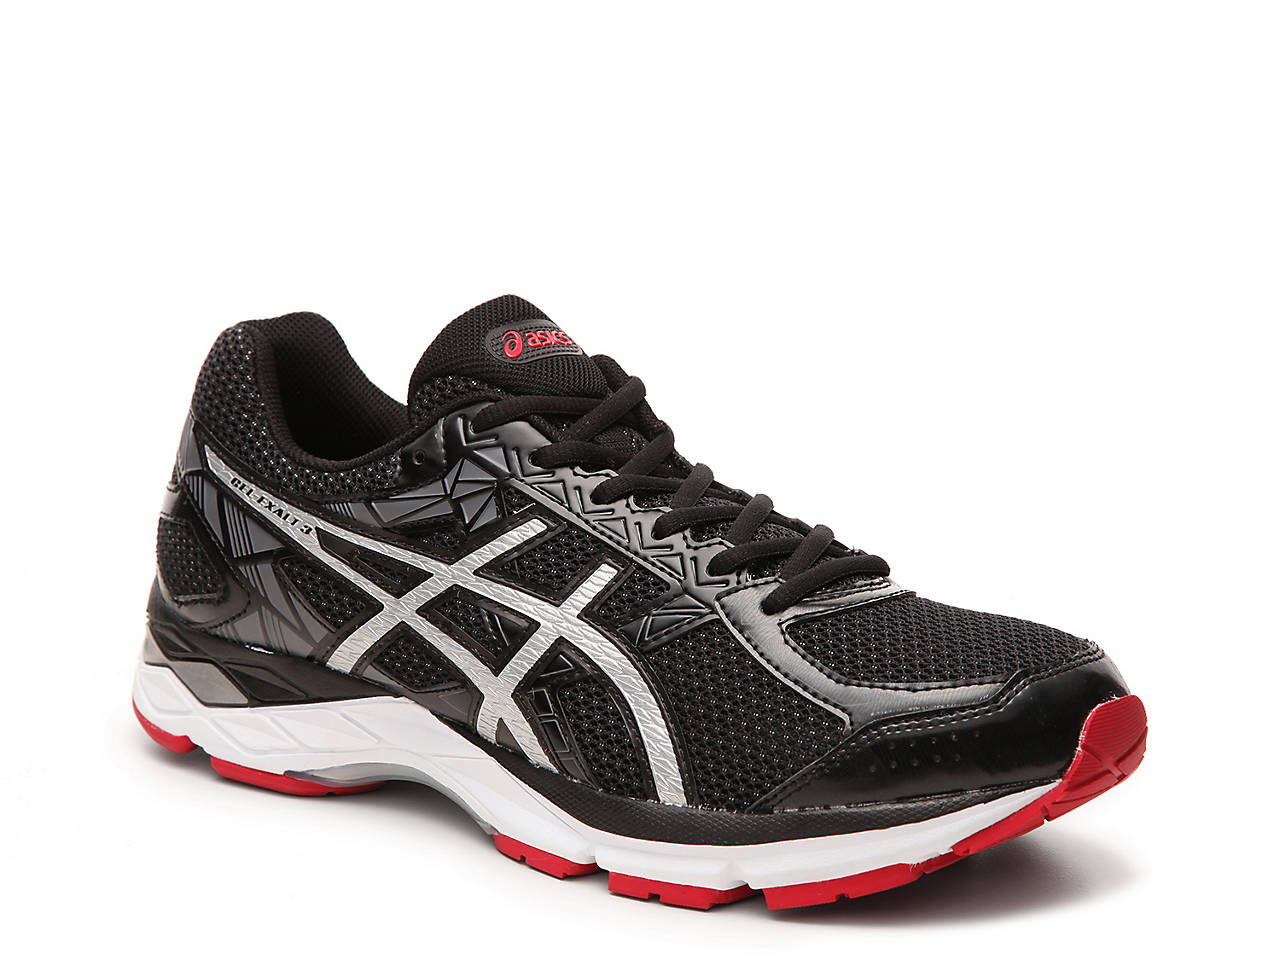 fff55231b838 ASICS GEL-Exalt 3 Performance Running Shoe - Men s Men s Shoes